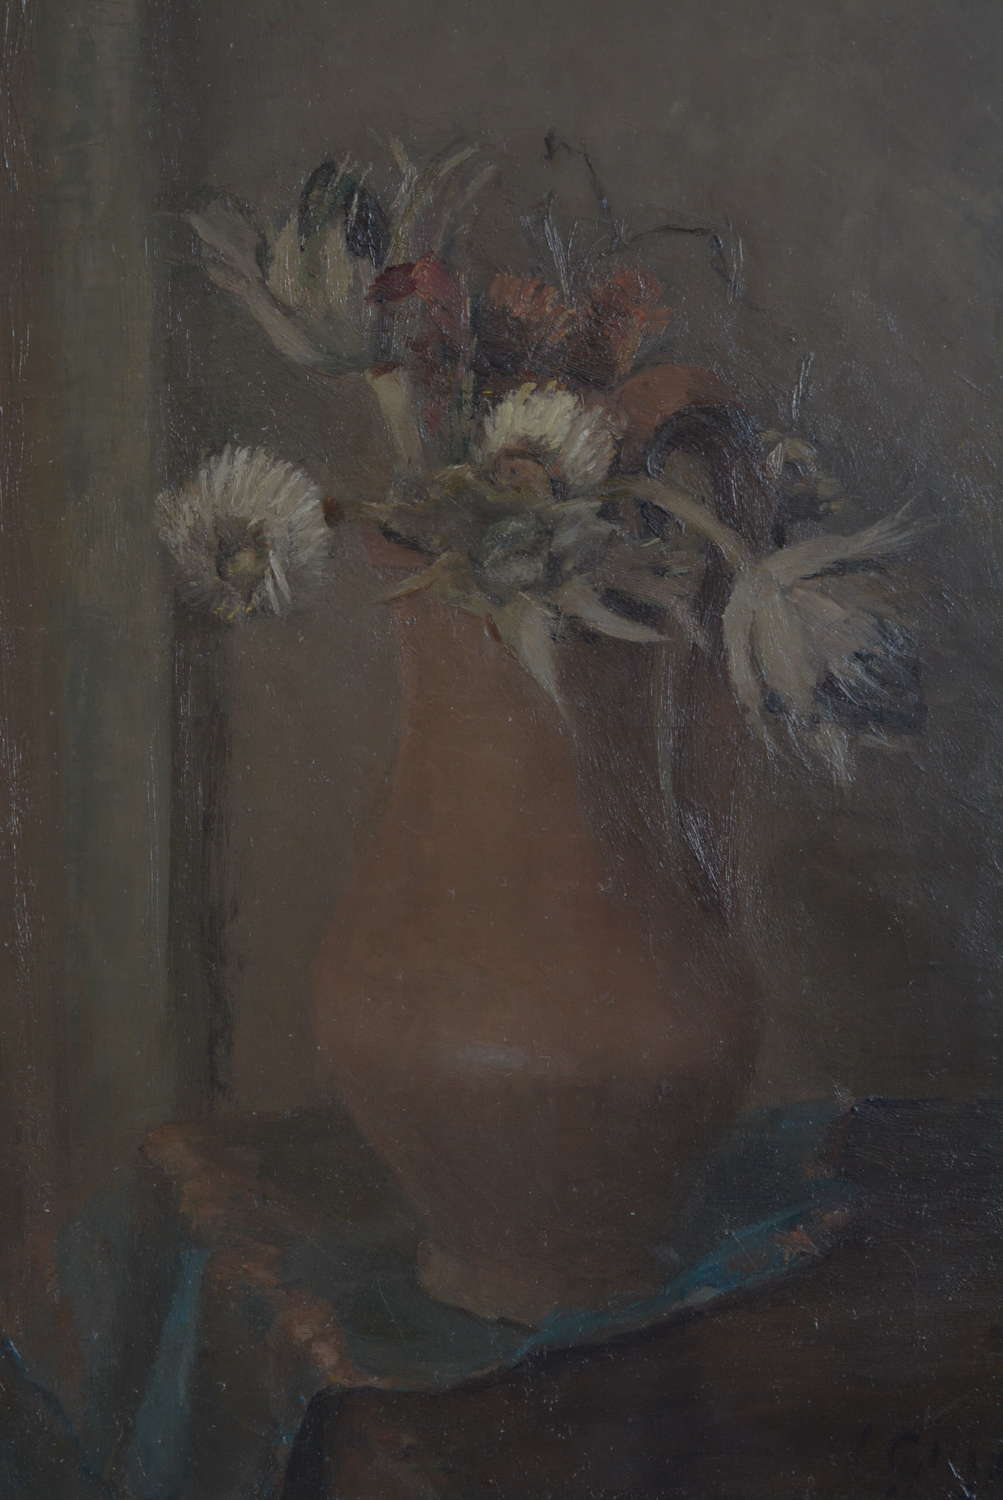 LAURE-CECILE 'LOUISE' GUYOT STILL LIFE JUG WITH THISTLES